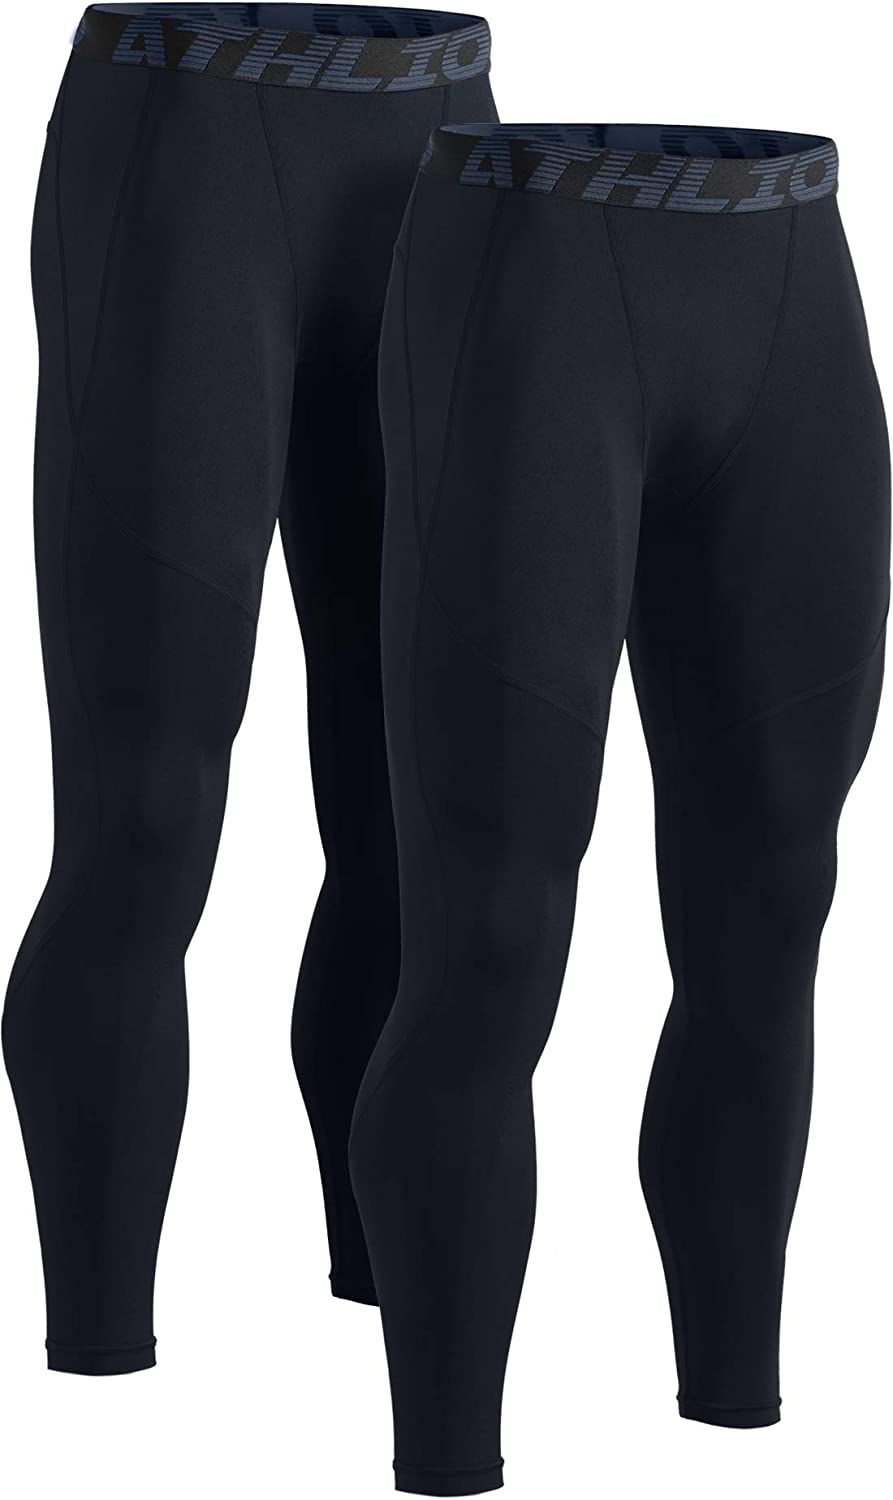 Compression Pants Workout Running Baselayer Active Cool Dry Leggings Tights TSLA Mens Pack of 1,2